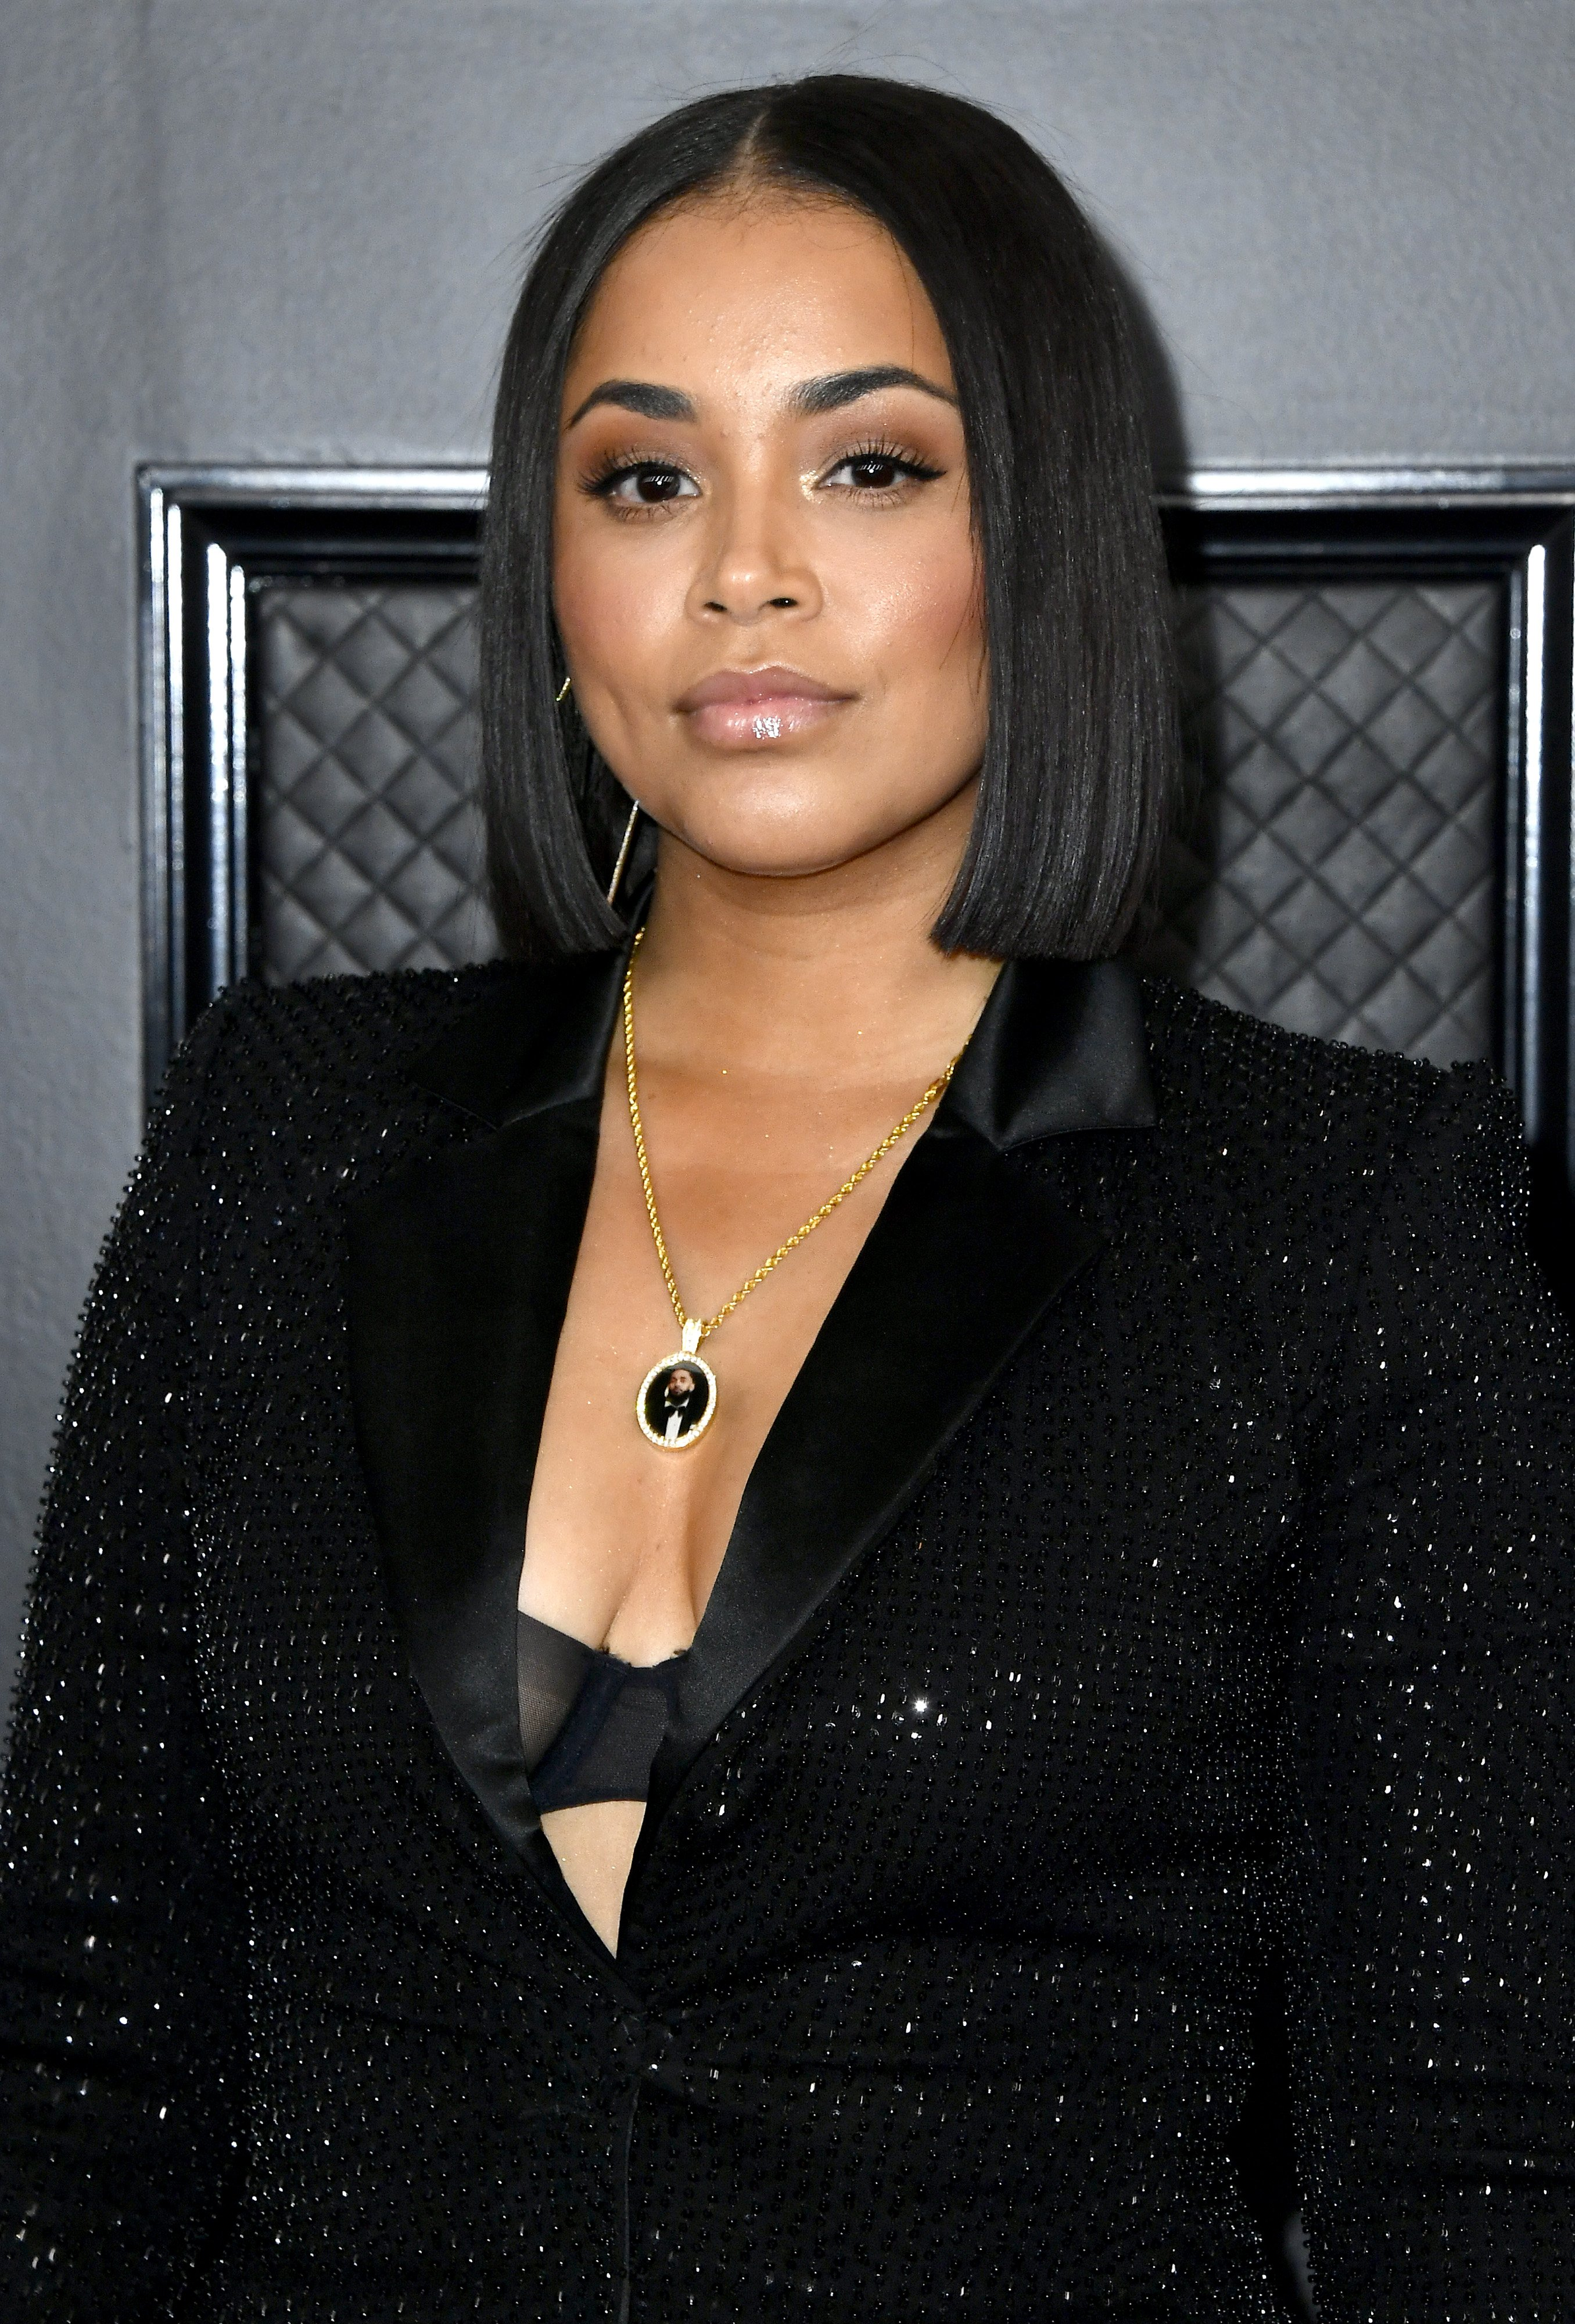 Lauren London pictured at the 62nd Annual Grammy Awards in California on January 26, 2020. | Photo: Getty Images